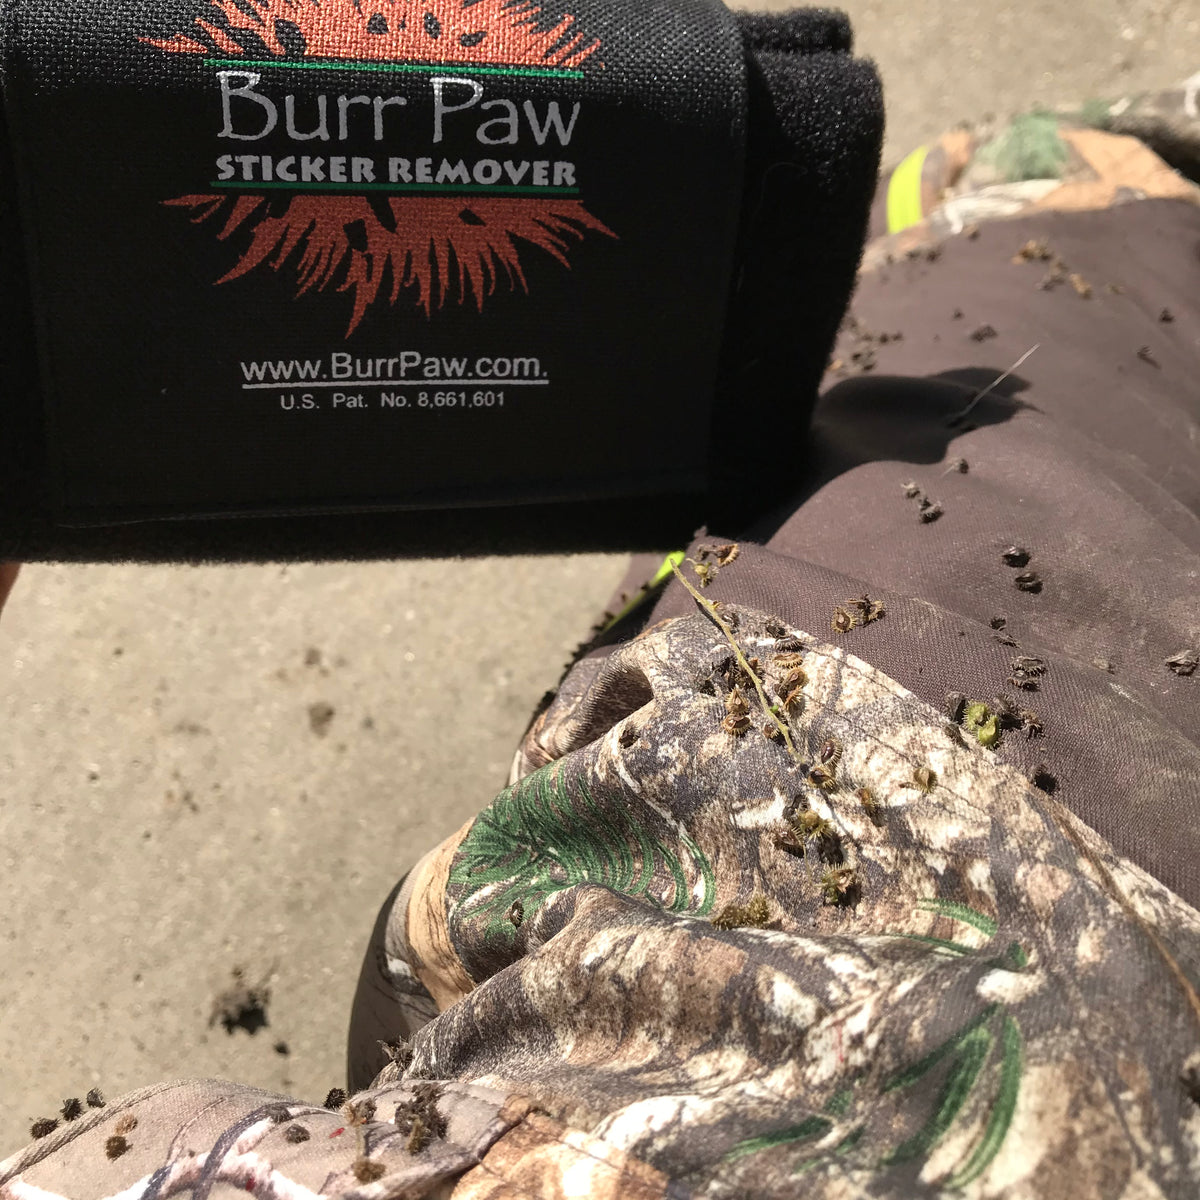 The Burr Paw removes stickers and burrs from pets, gear and clothing.